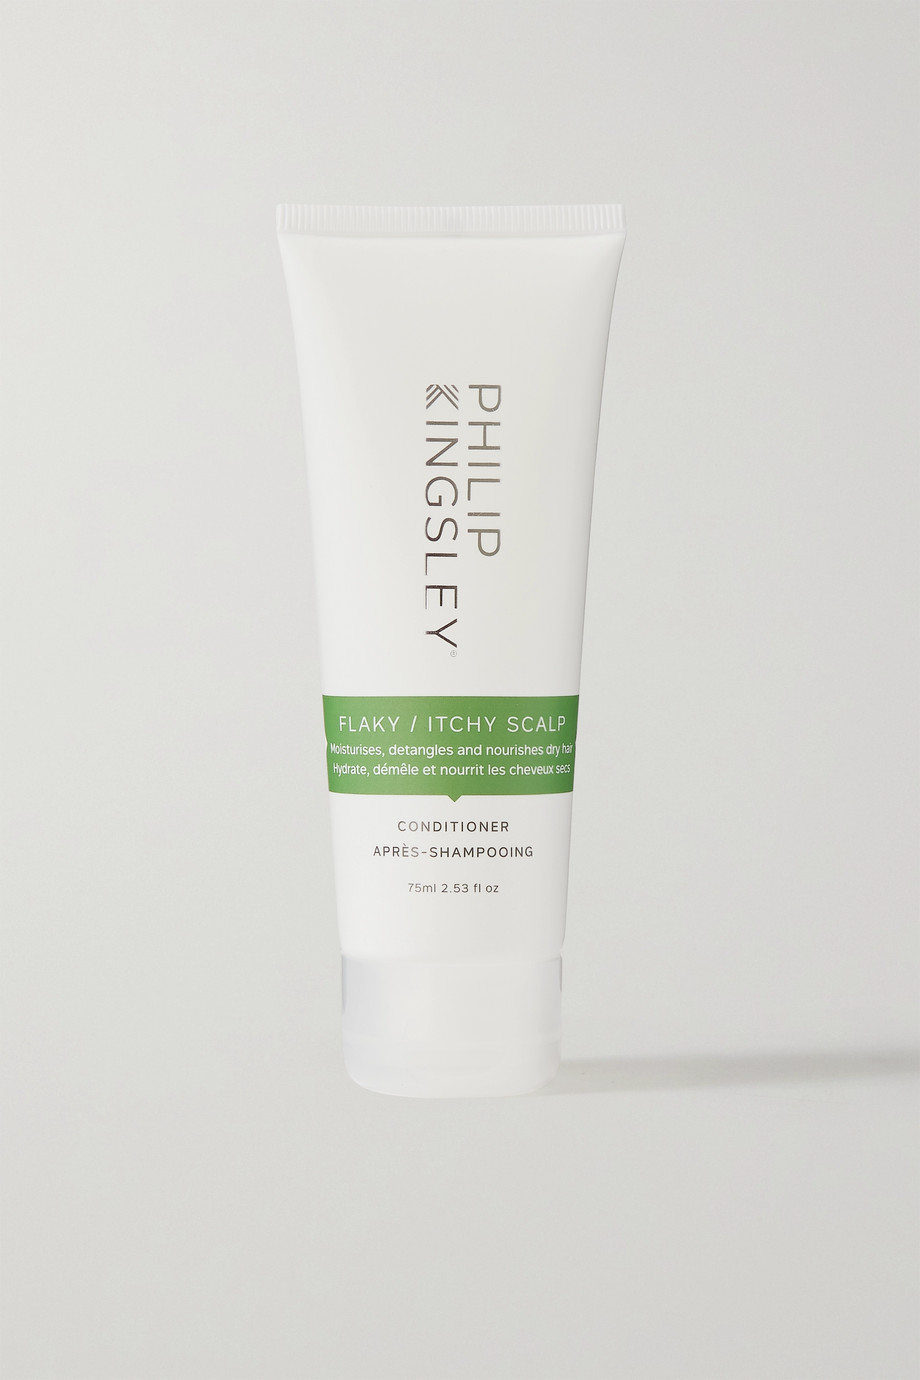 PHILIP KINGSLEY Flaky Itchy Scalp Hydrating Conditioner, 75 ml – Conditioner